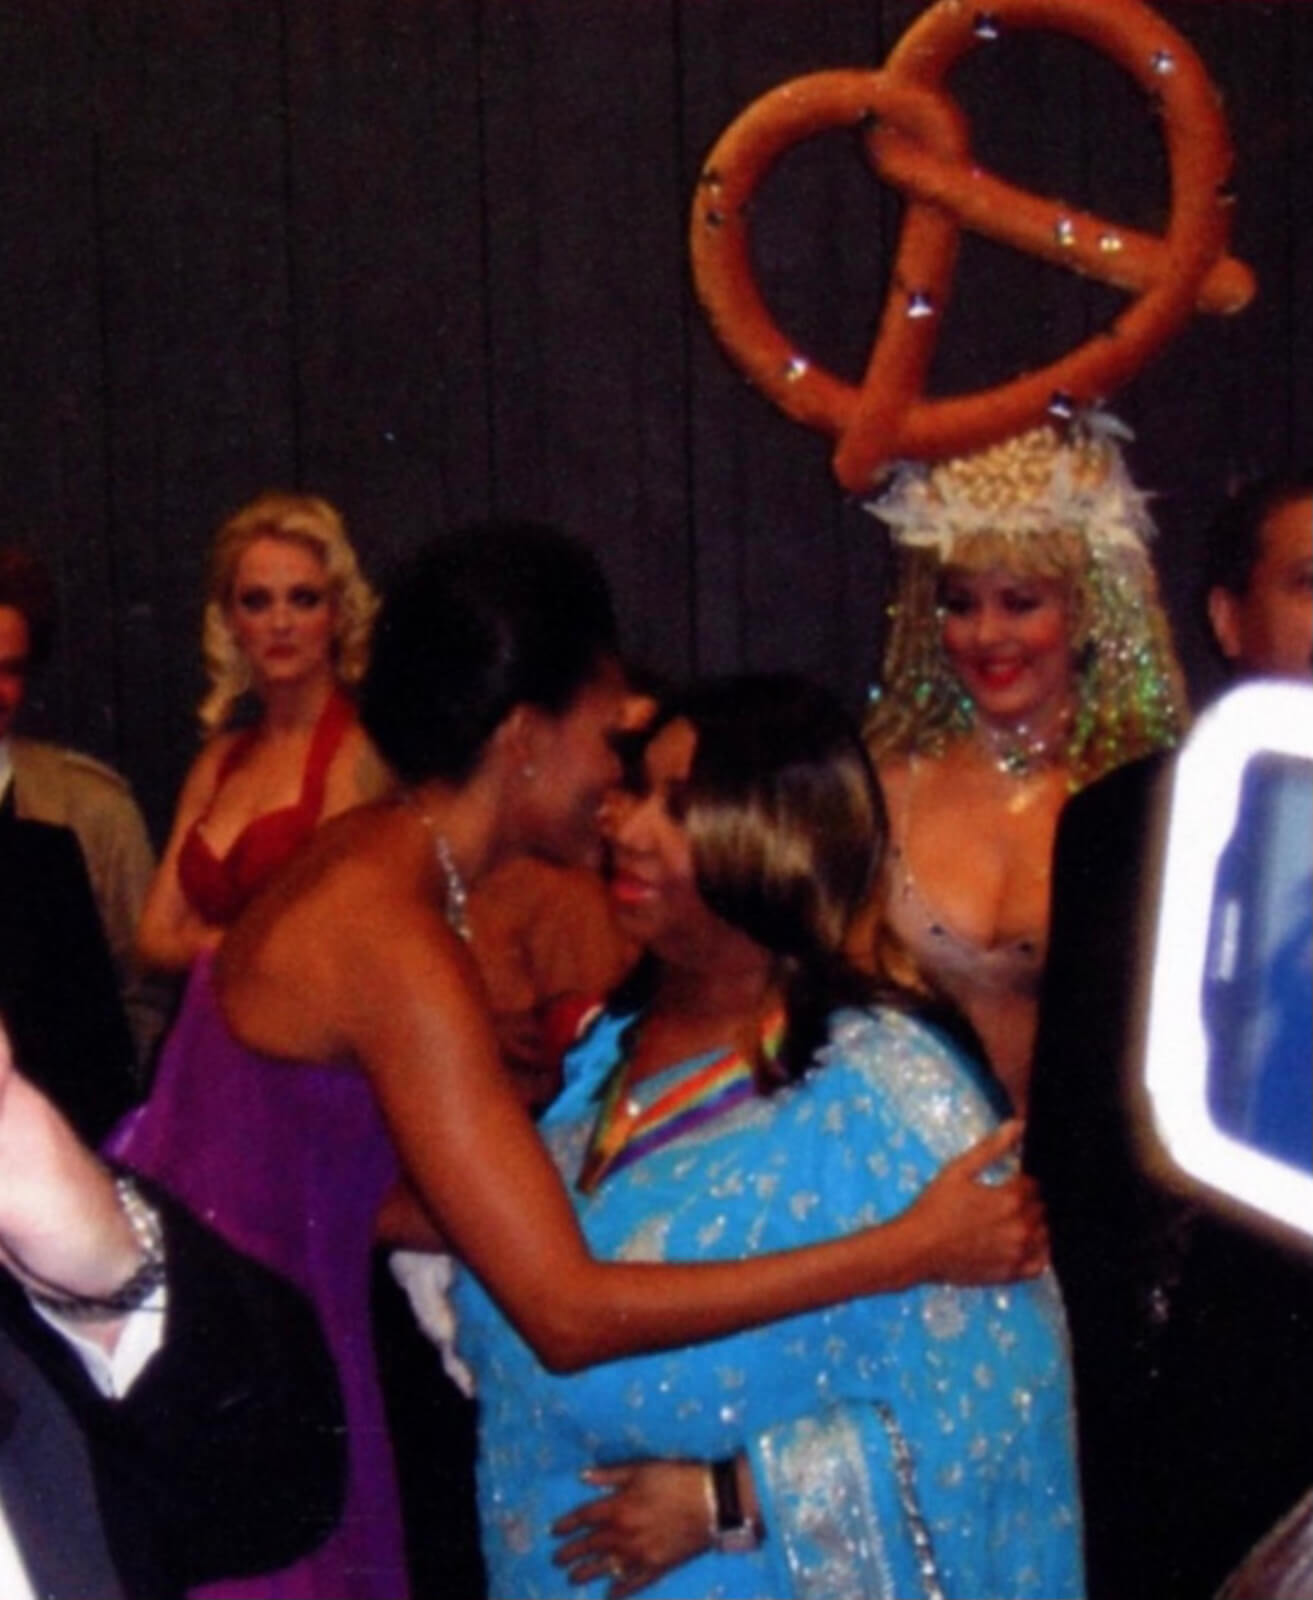 Michelle Obama backstage congratulating Aretha Franklin at the Kennedy Center Honors.